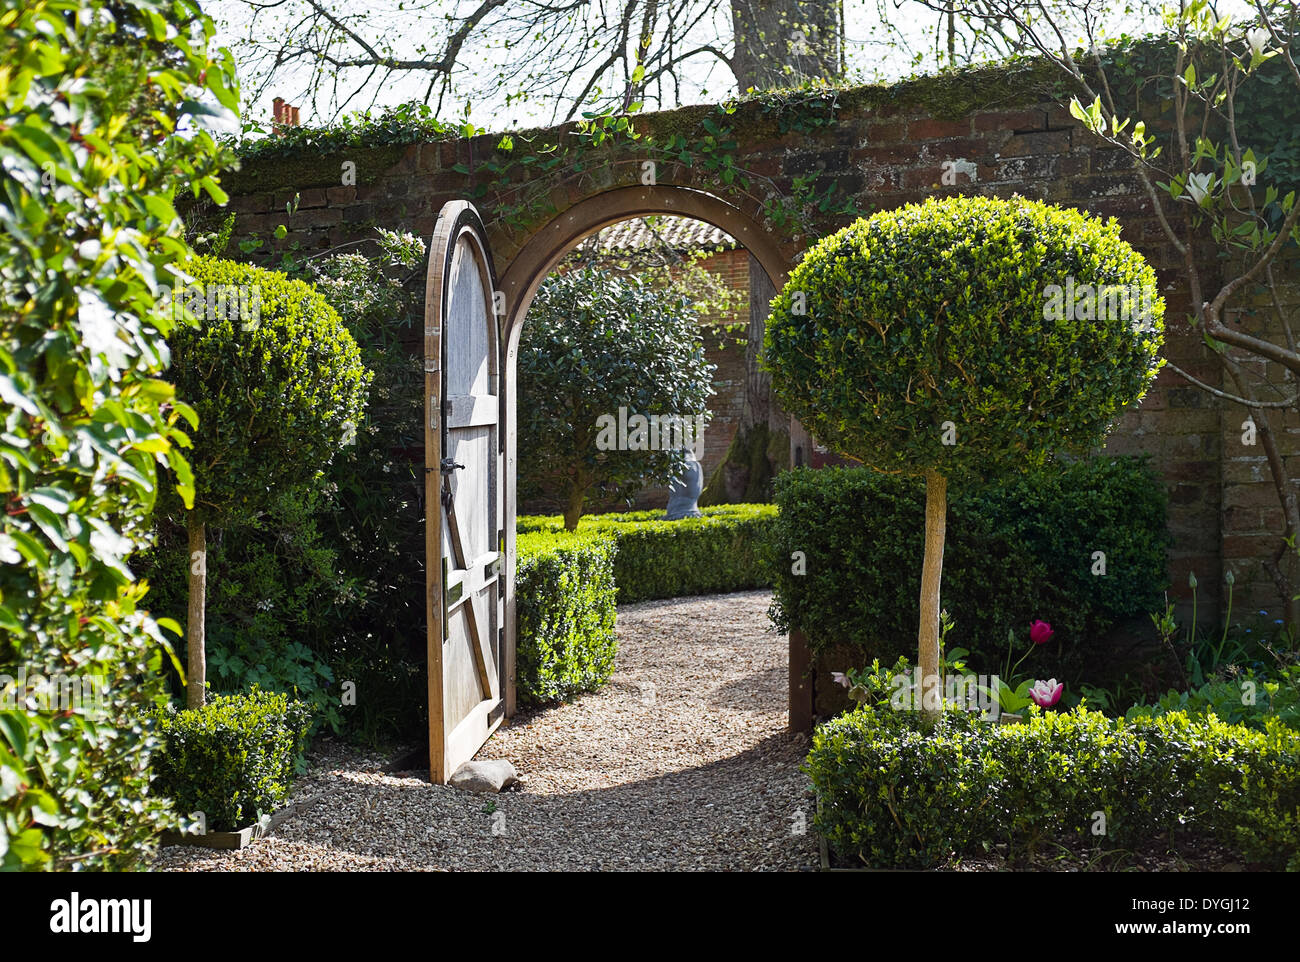 the award winning gardens at west green house where an open door stock photo  royalty free image